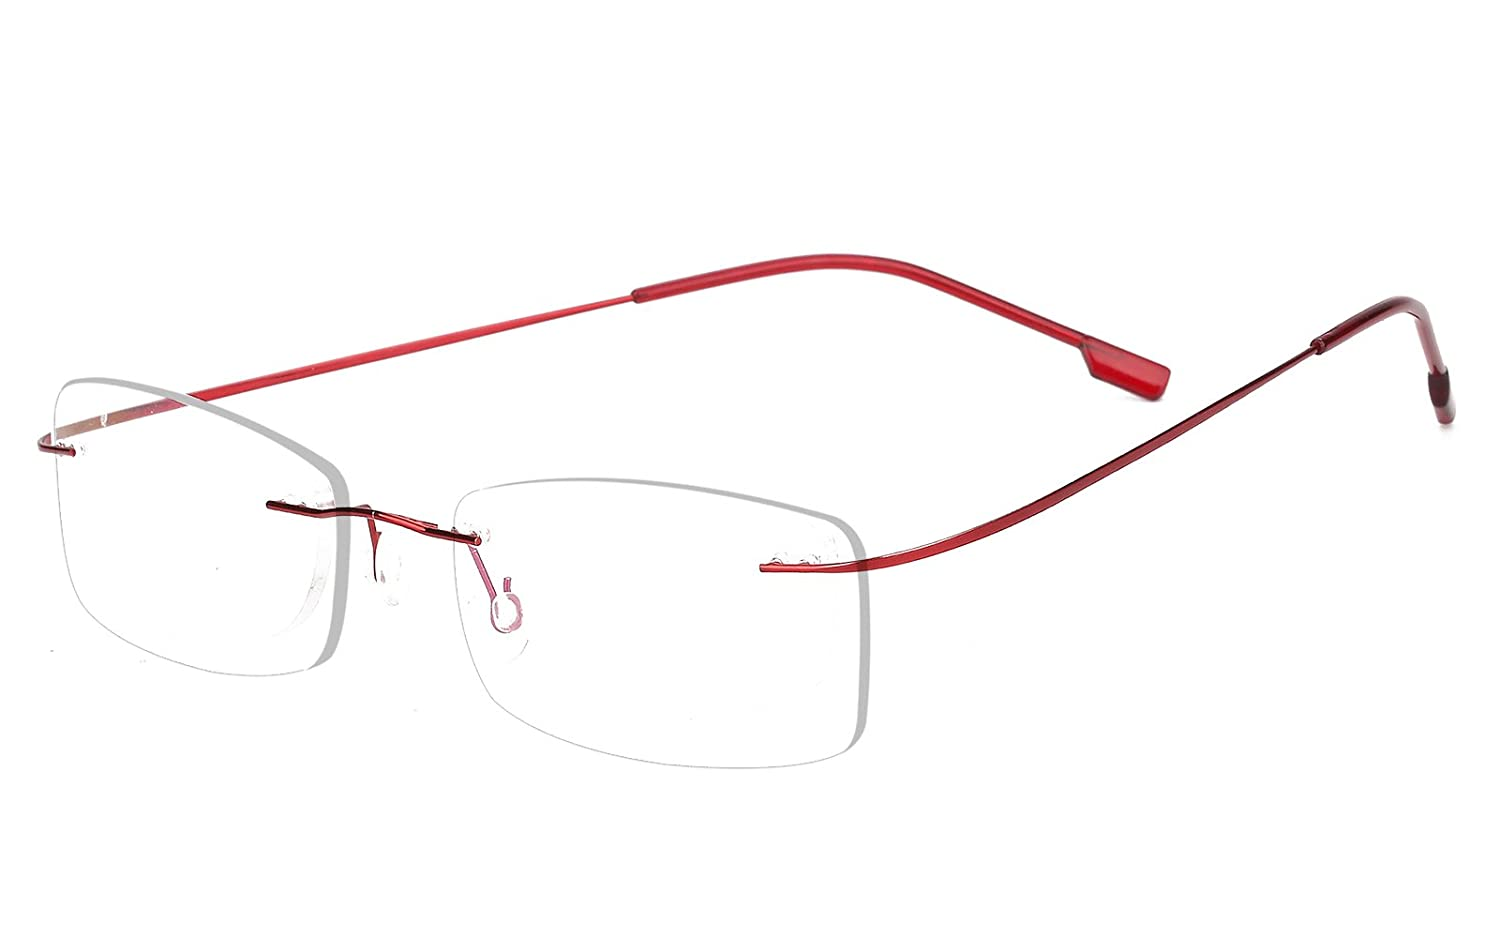 Agstum Mens Womens Titanium Alloy Flexible Rimless Frame Prescription Eyeglasses 51mm 51) A-3040